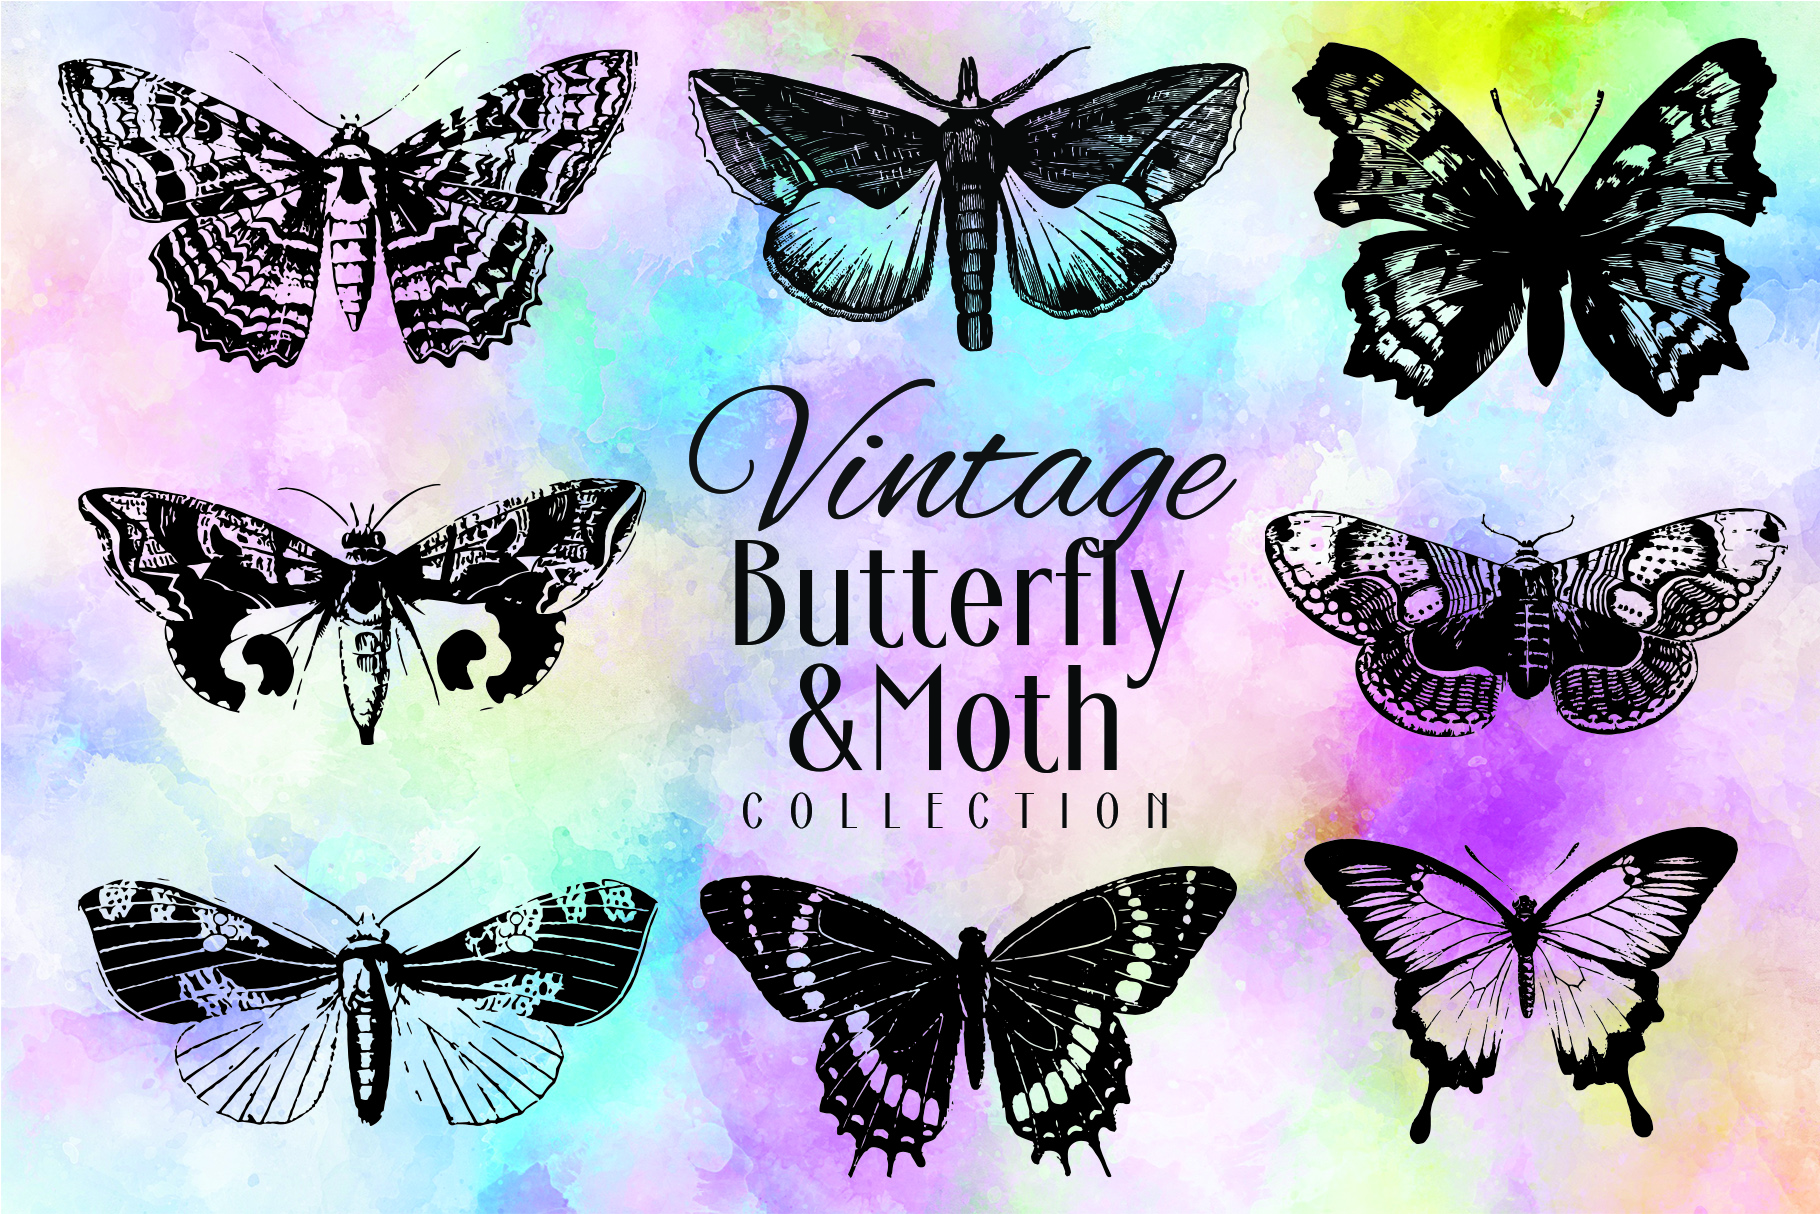 Download Free Vintage Butterfly Collection Graphic By Denestudios Creative for Cricut Explore, Silhouette and other cutting machines.